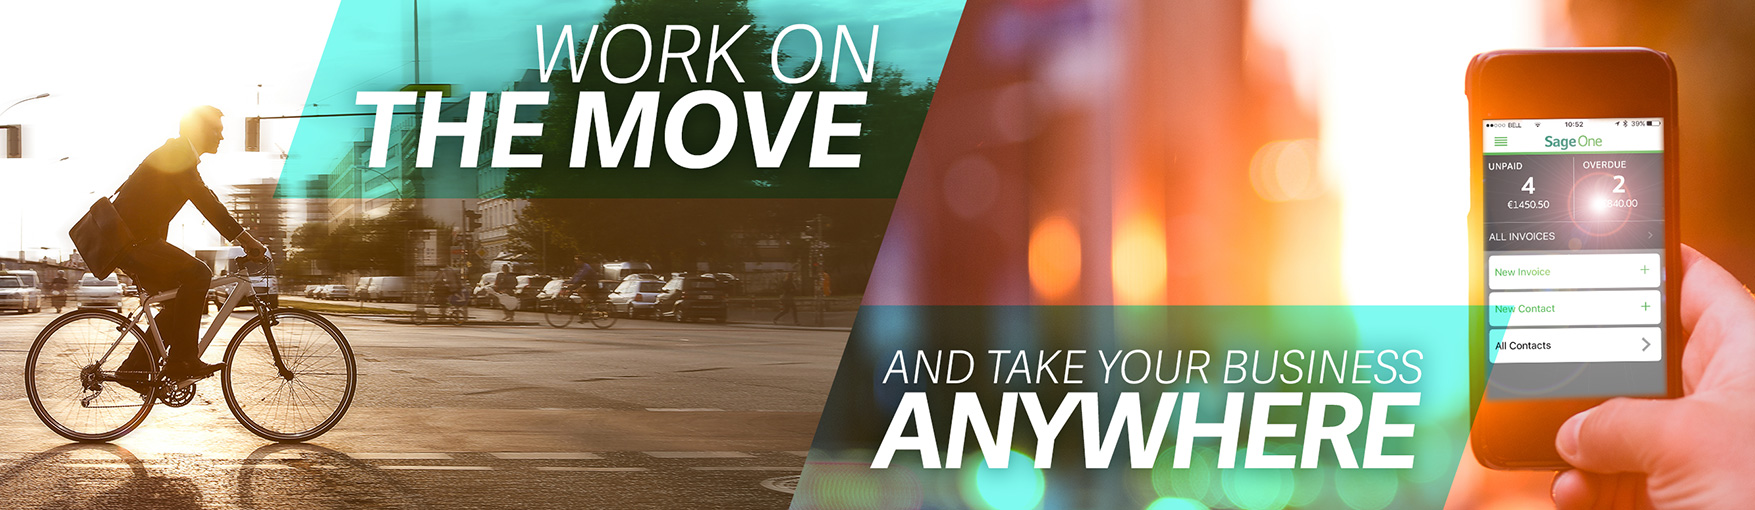 Work on the move. And take your business anywhere.